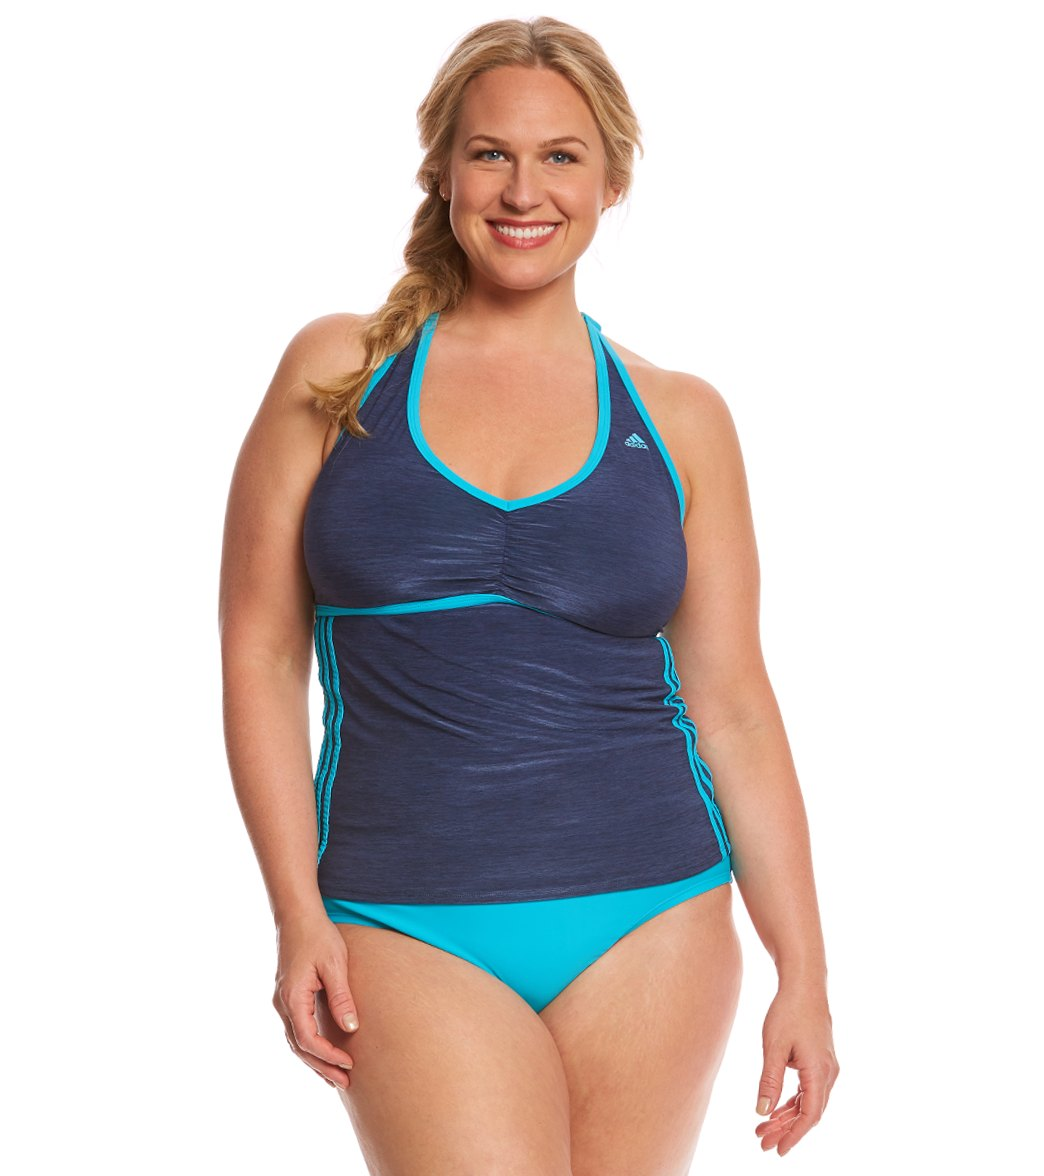 e073806ac6 ... Adidas Women's Plus Size Light as a Heather Sport Tankini Top. Play  Video. MODEL MEASUREMENTS